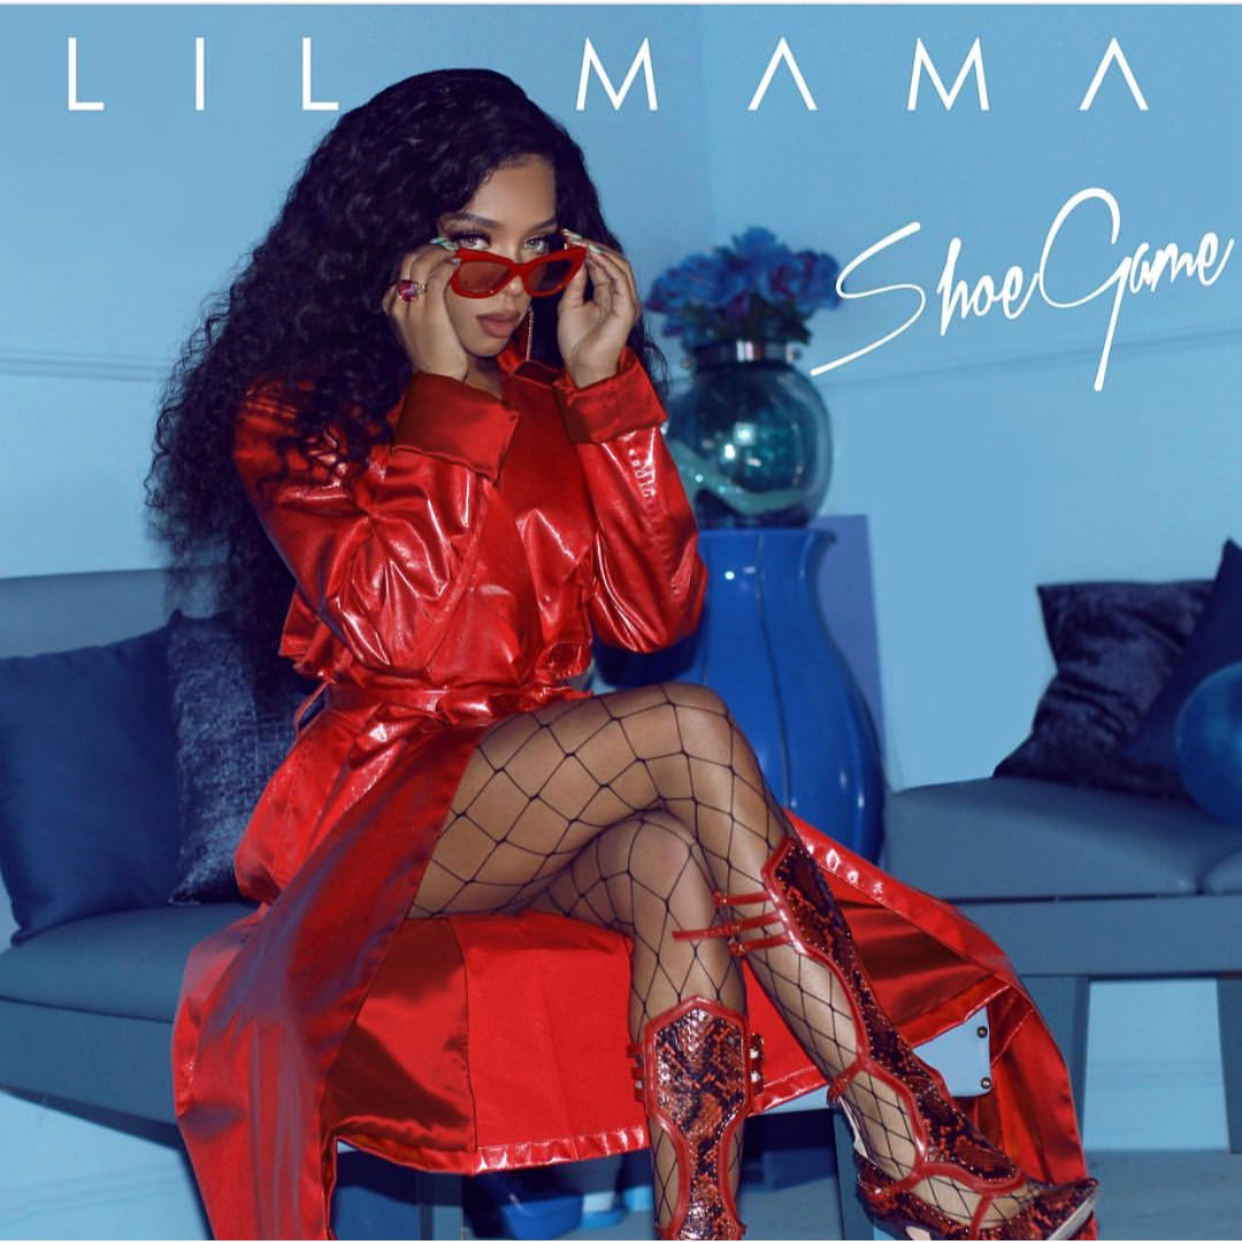 Rapper Lil Mama - FEATURED ON LIL MAMA NEW RELEASED ALBUM COVER